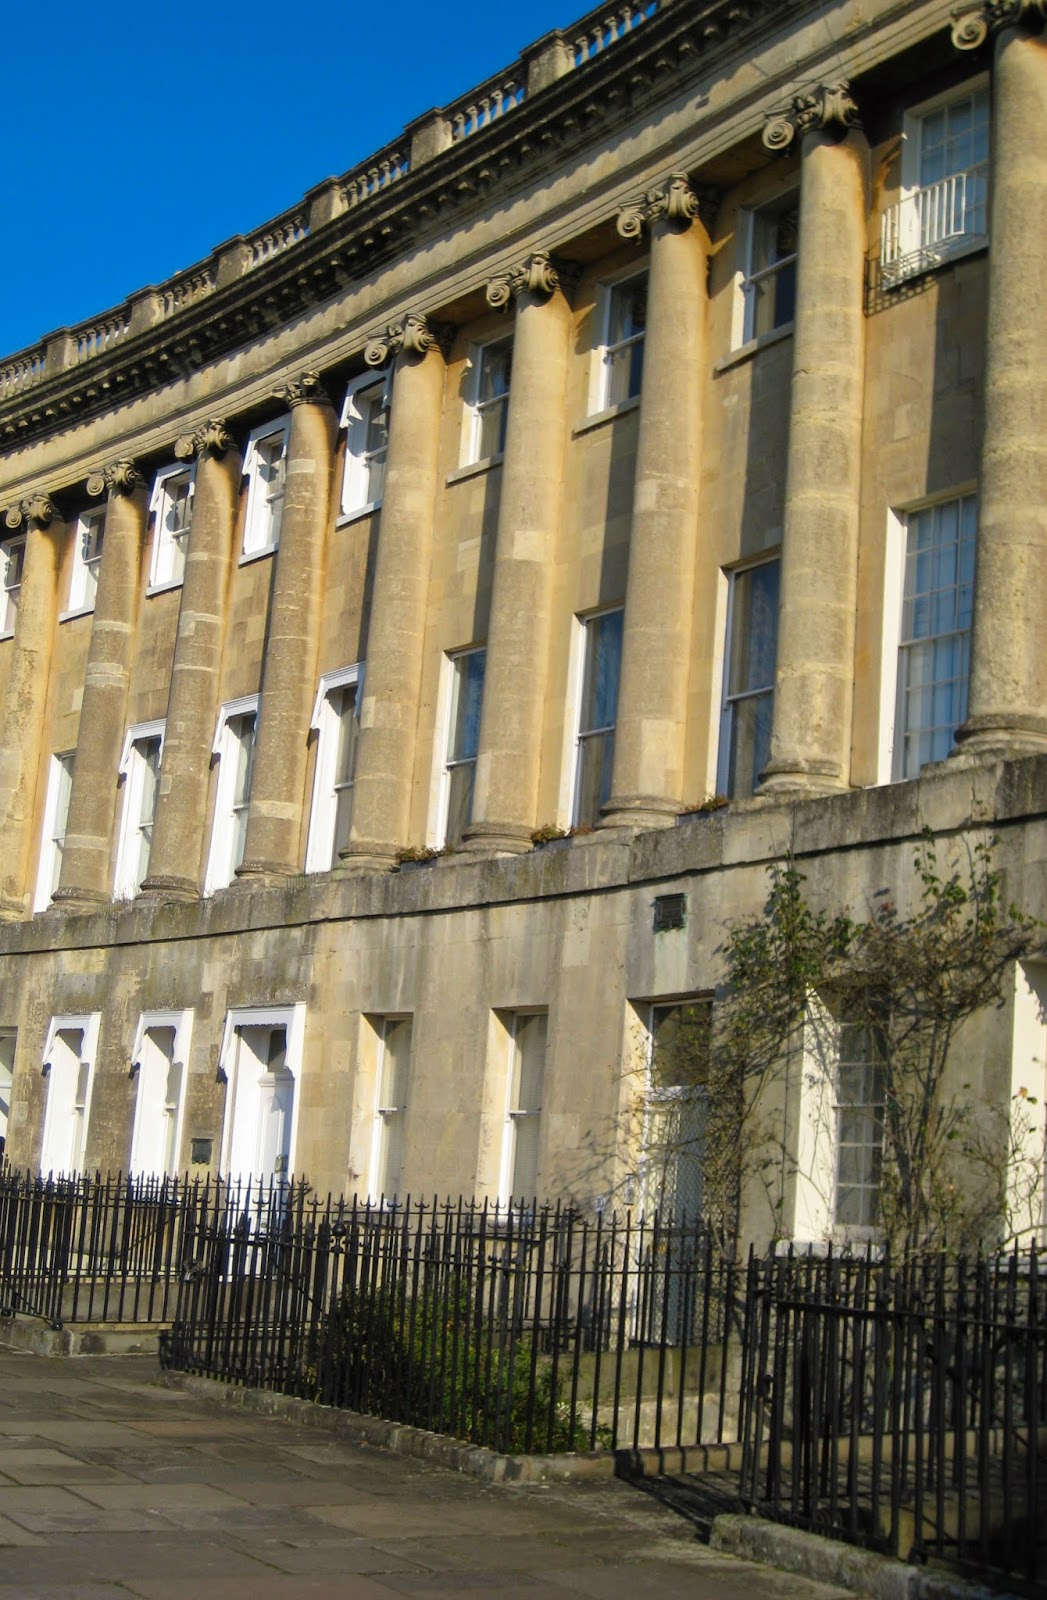 Thomas Linley's house on Royal Crescent, Bath